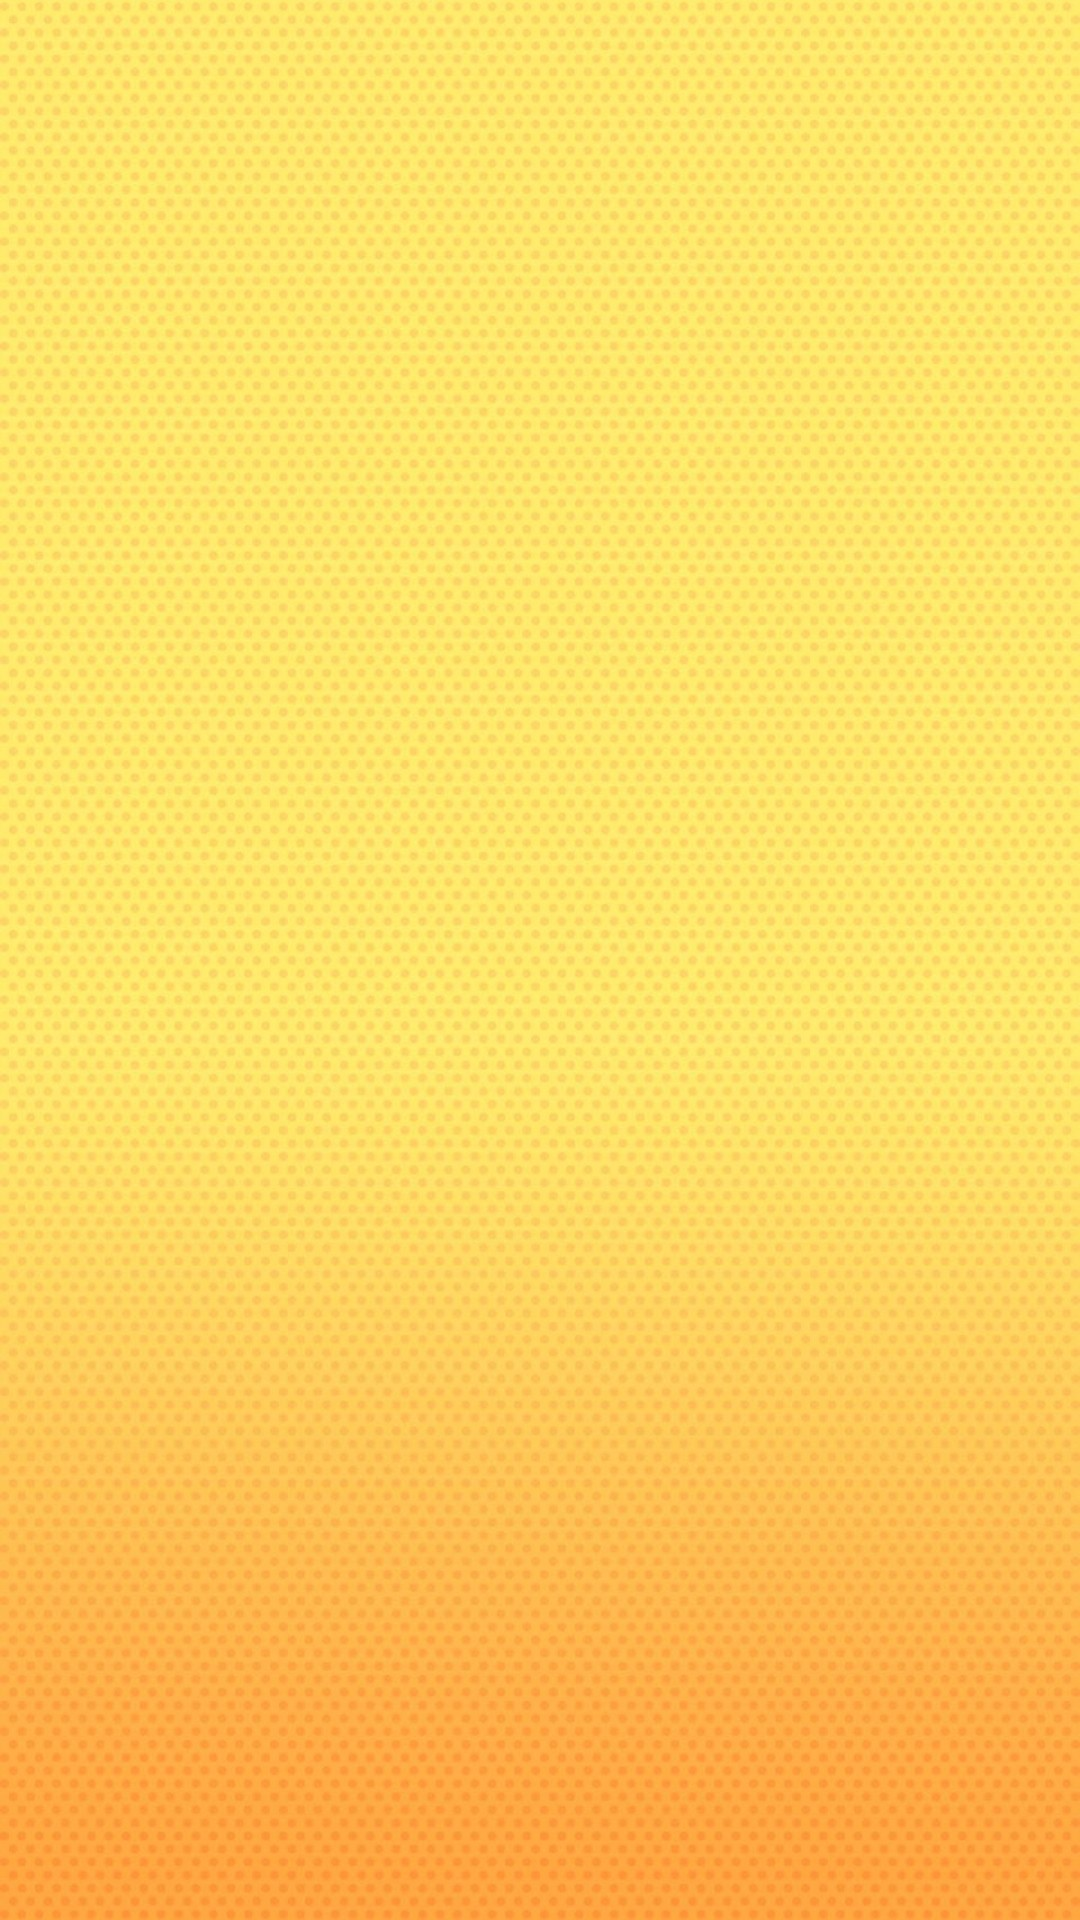 Yellow iphone home screen wallpaper